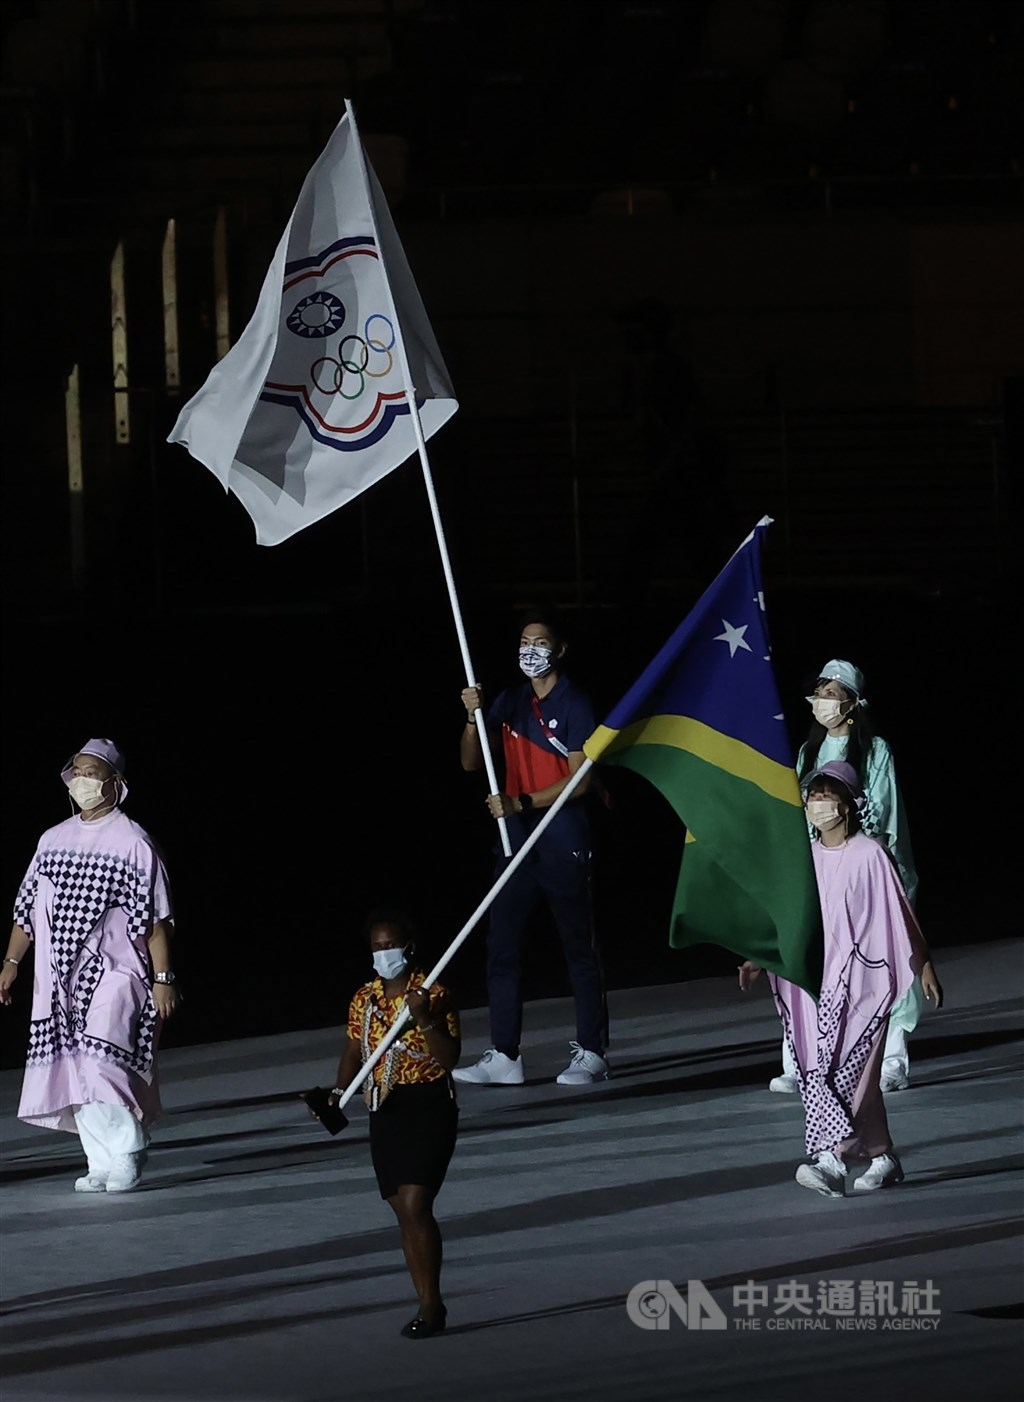 Sprinter Chen Chieh (back, center) carries the flag of Taiwan